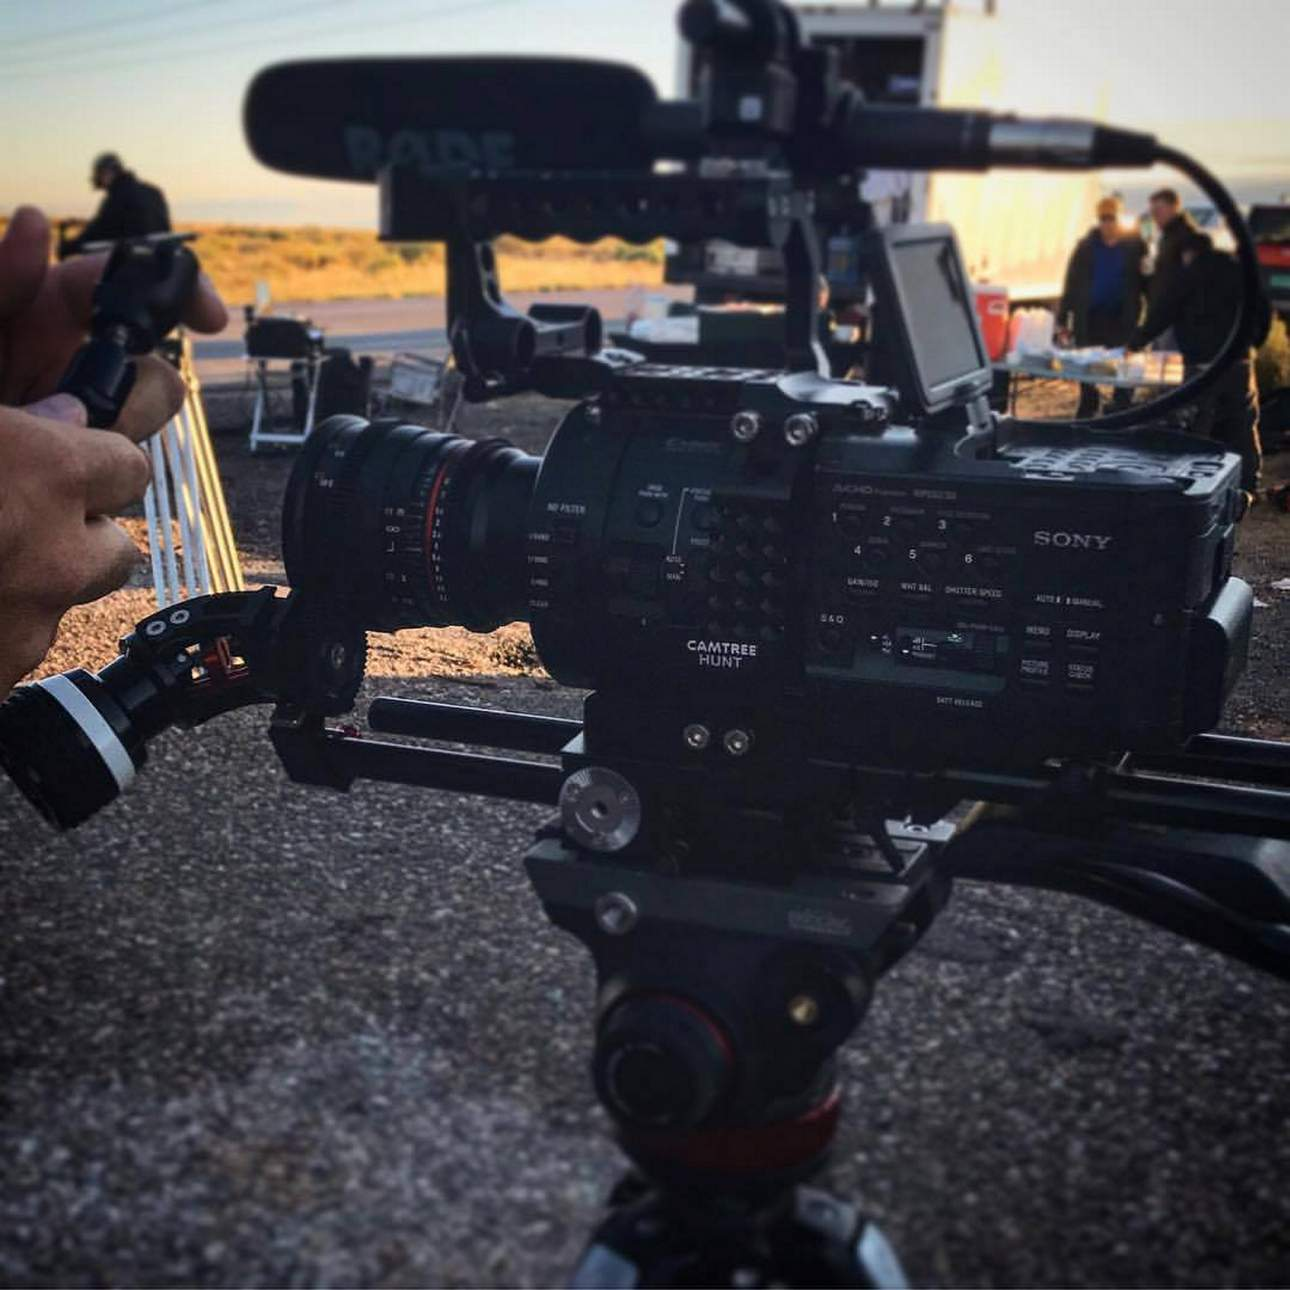 New grant available to Native American filmmakers in New Mexico